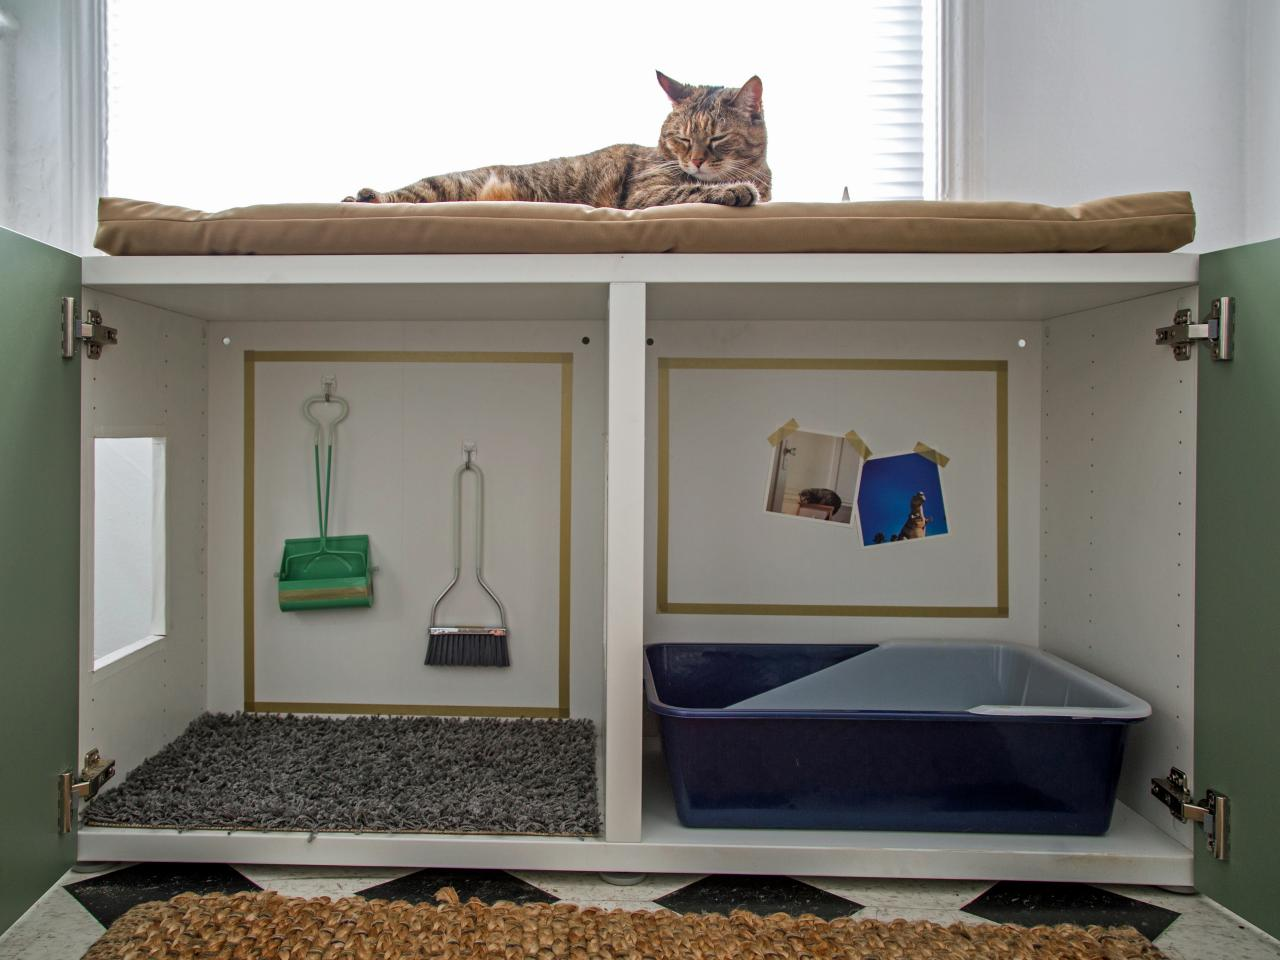 How To Conceal A Kitty Litter Box Inside A Cabinet Hgtv